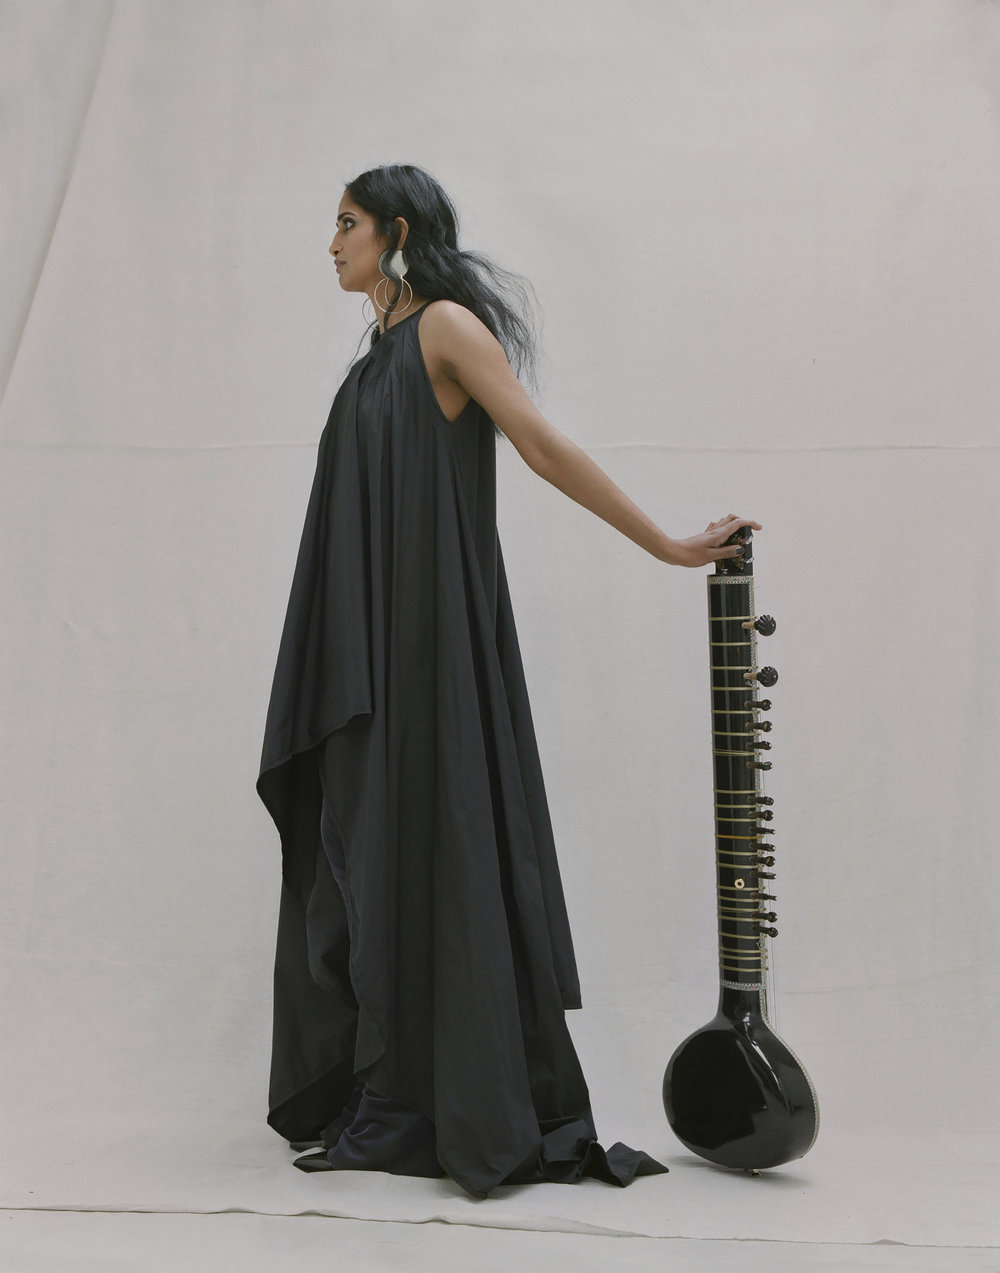 Asymmetrical long dress and trousers MICHAEL OLESTAD, black leather shoes PACO RABANNE, earrings ANNIE COSTELLO BROWN.